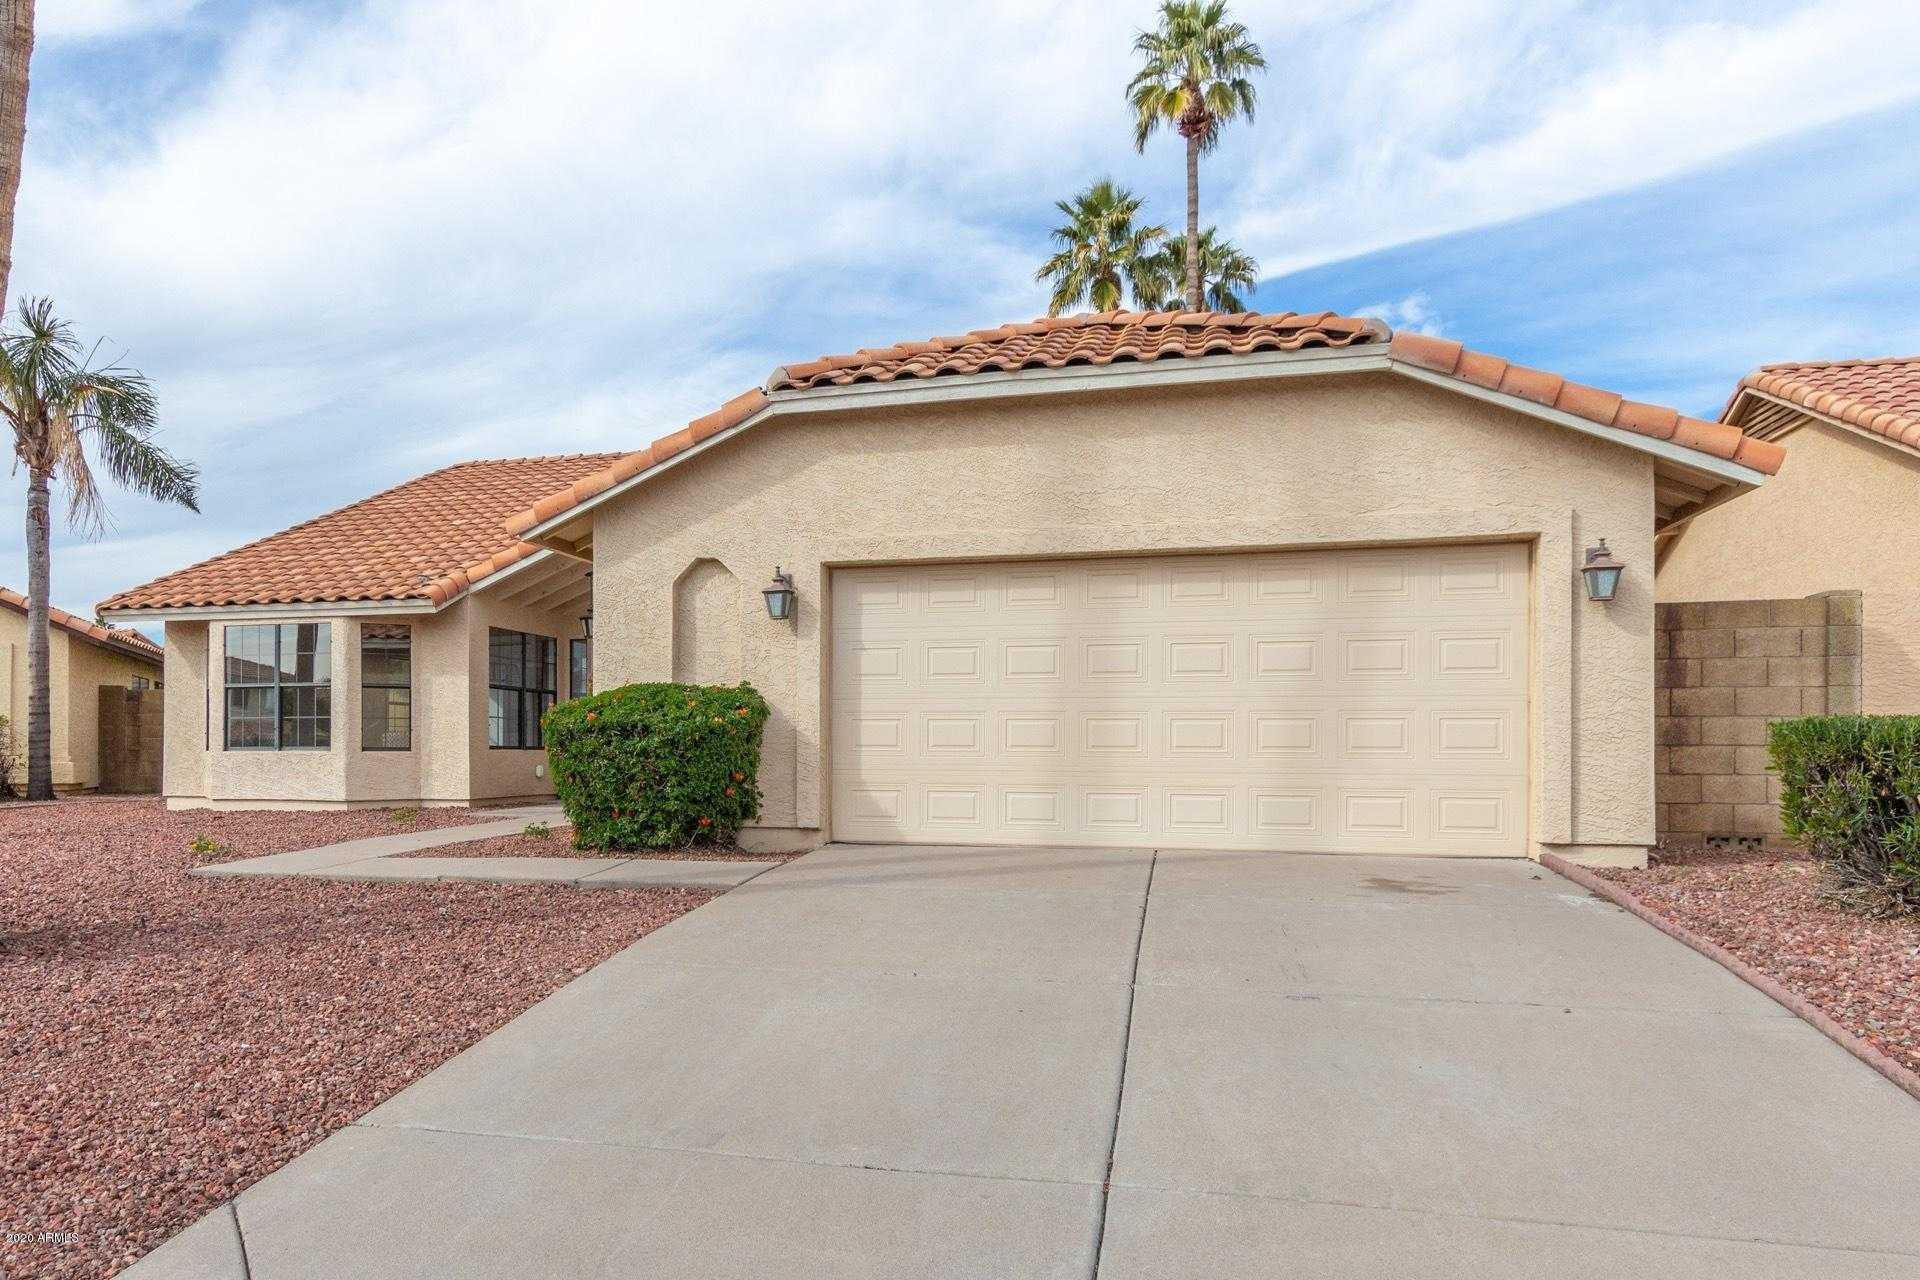 $379,900 - 3Br/2Ba - Home for Sale in Arrowhead Ranch, Glendale